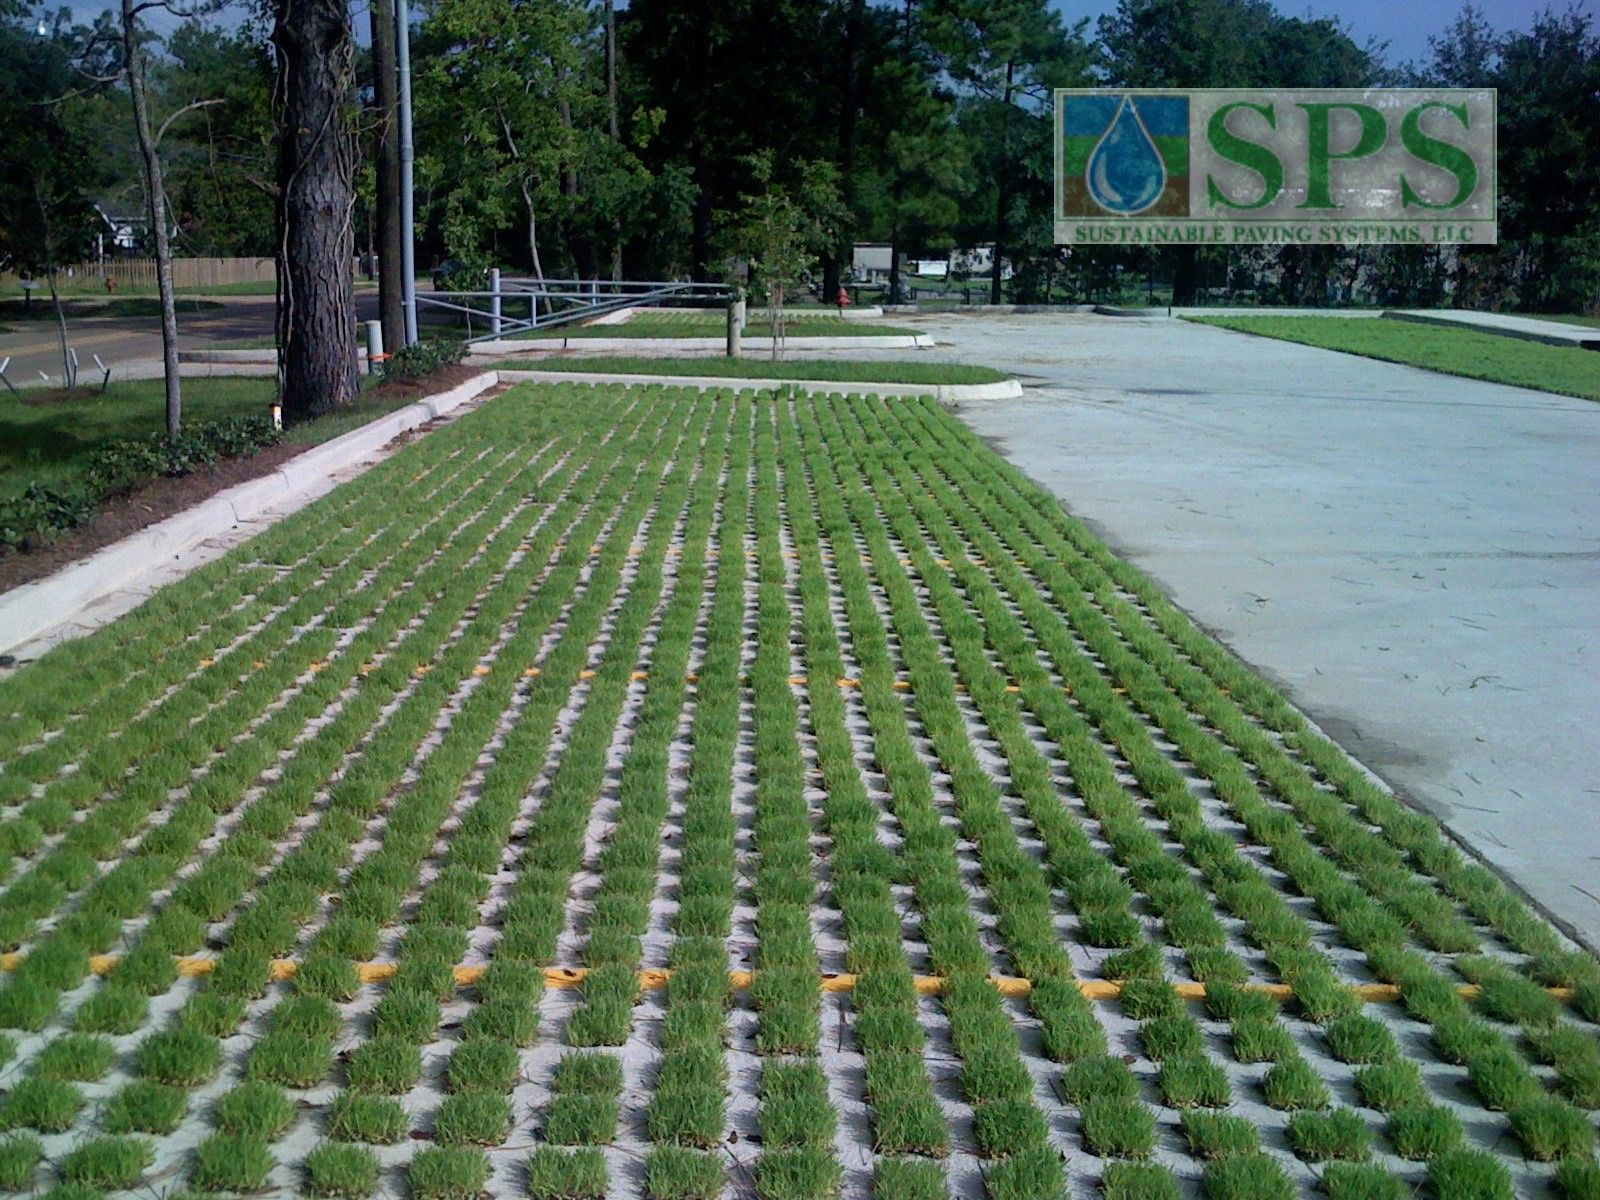 Featured here is Grasscrete, a pervious paving system that was installed using molded pump formers to provide sustainability while allowing for degradation over time into the sub-soils.